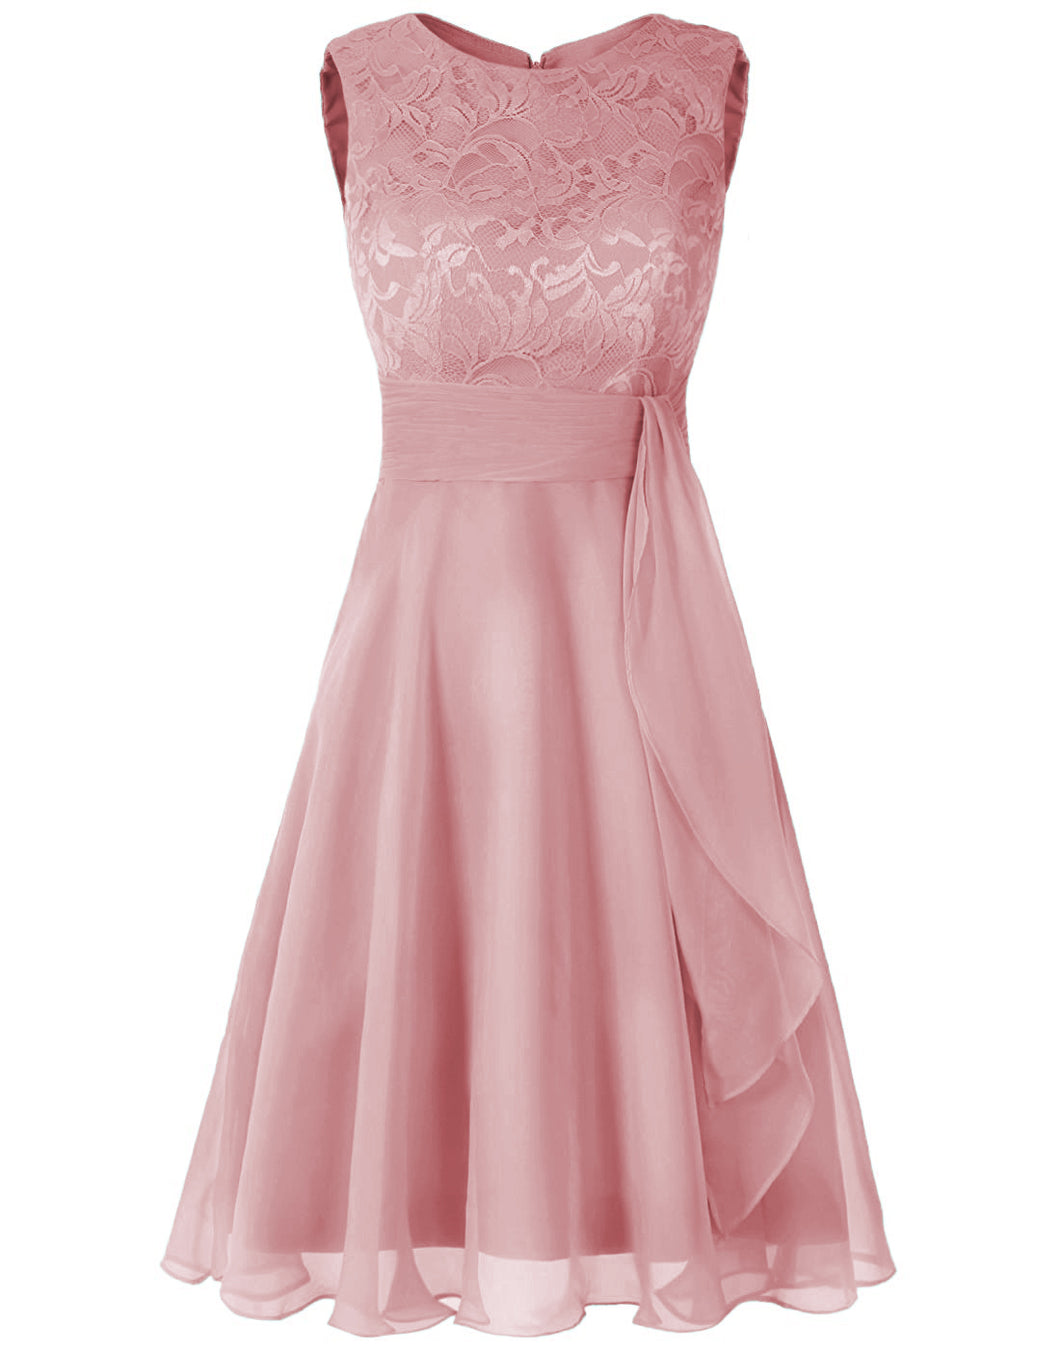 Clara Dusky Dusty Blush Pink  lace chiffon short knee length bridesmaid dress loulous bridal boutique ltd uk